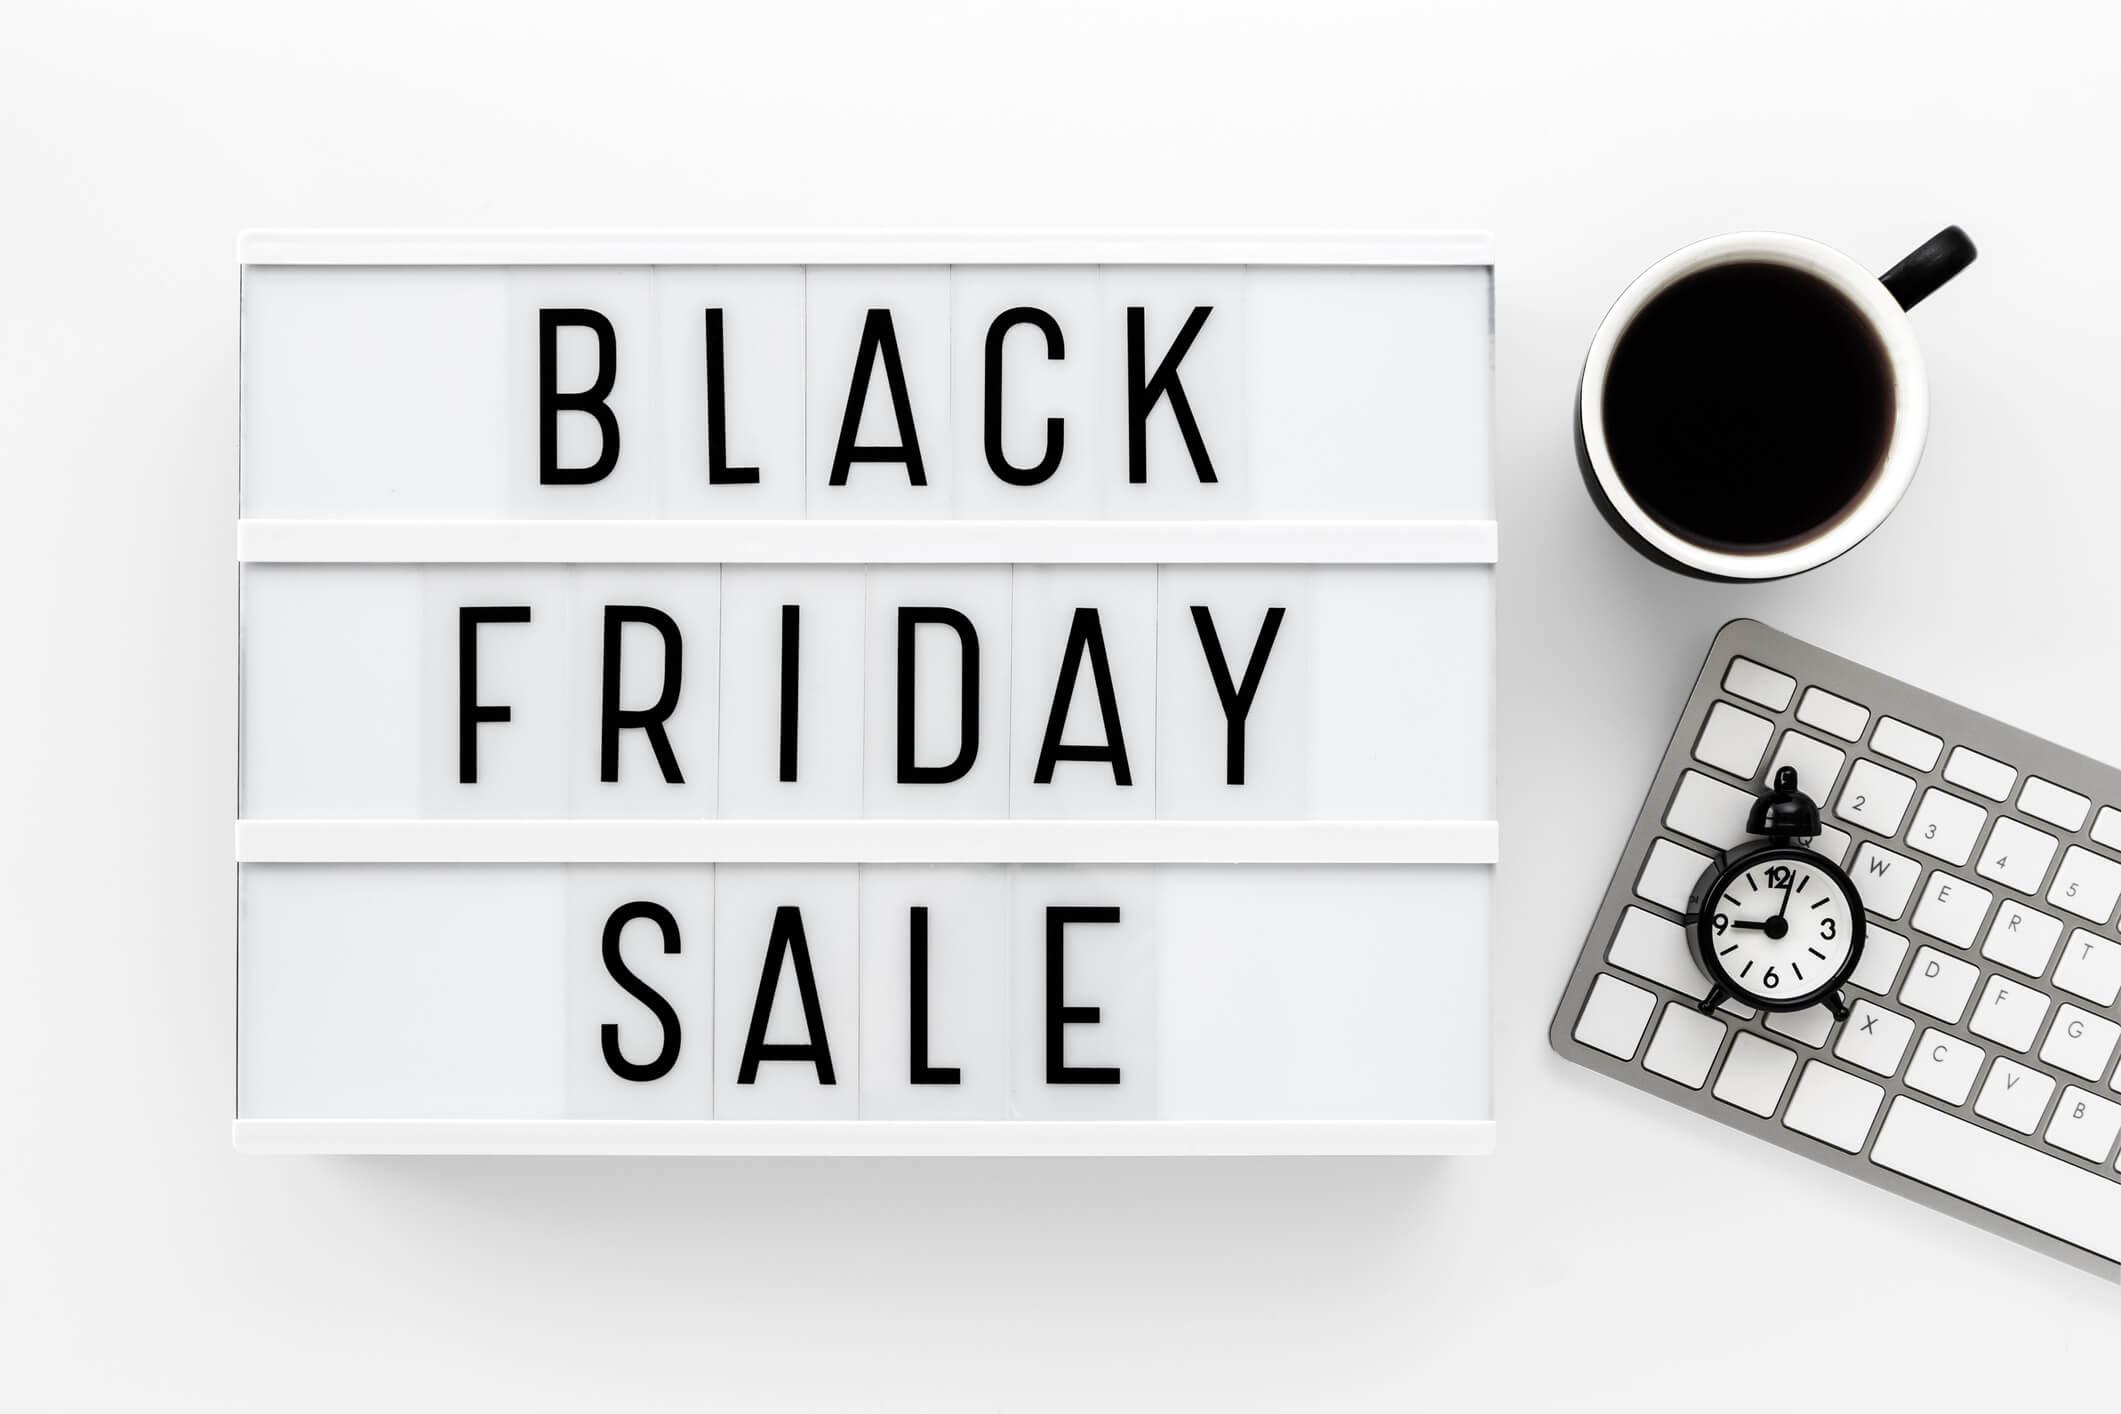 Black Friday e-commerce marketing plan